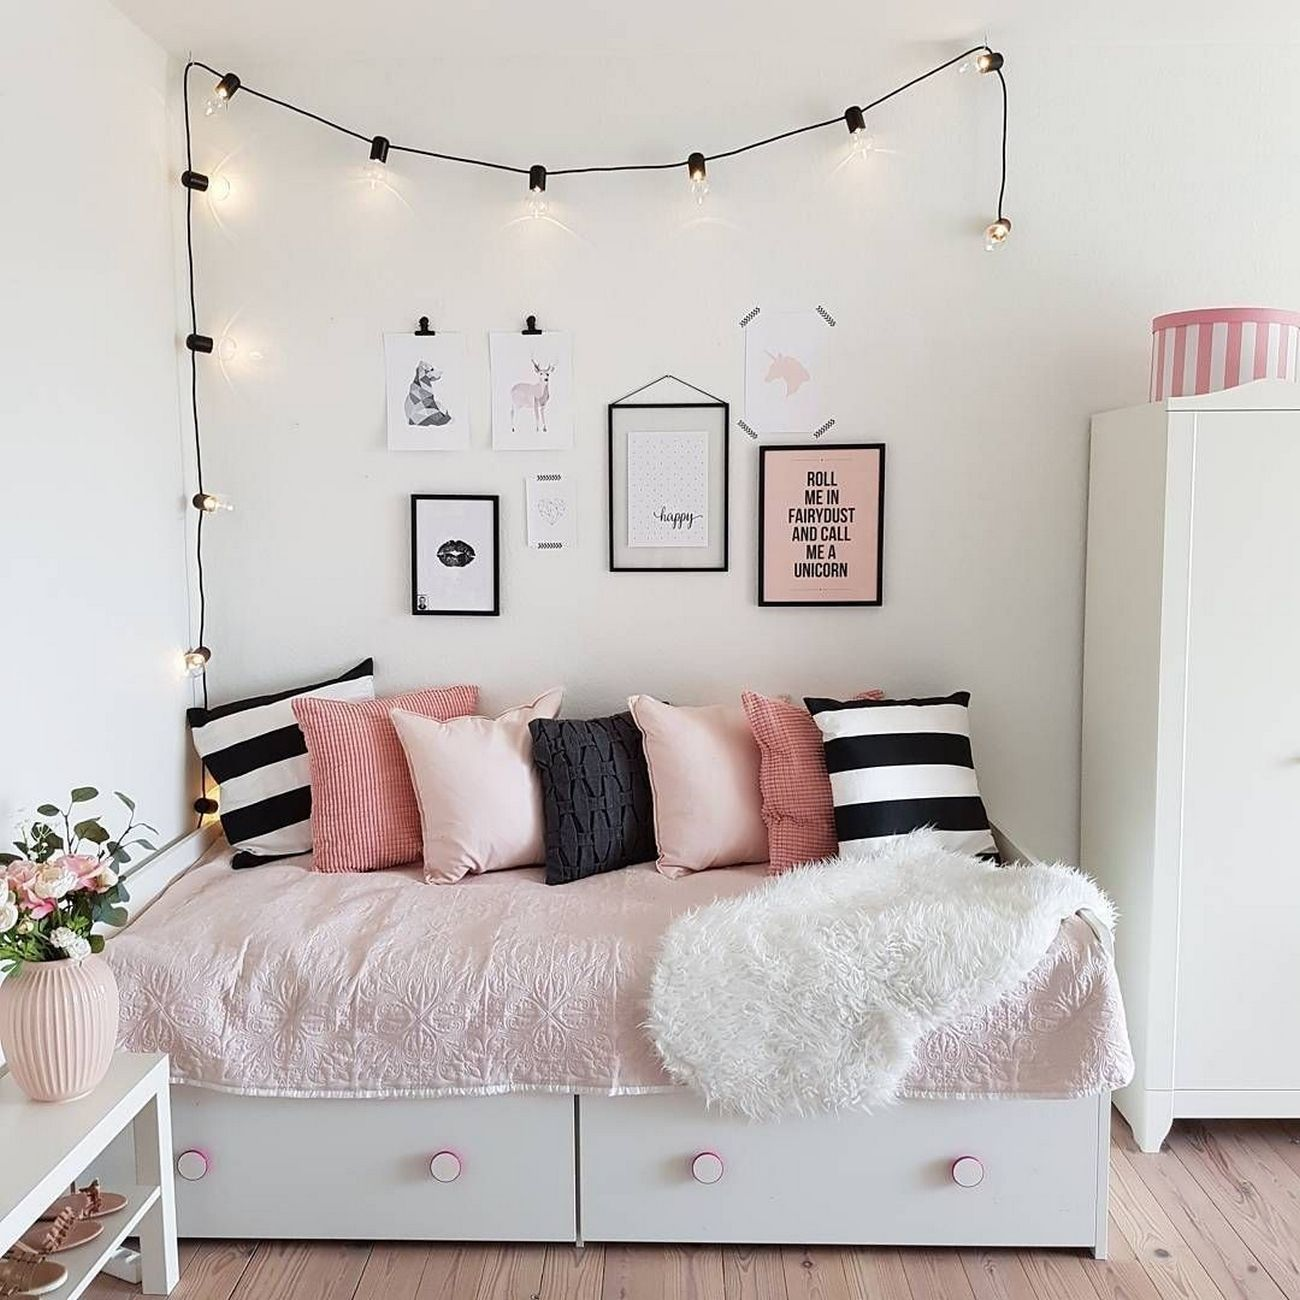 ✔️ 35 Top Choices Teenage Girl Bedroom Ideas For Small Rooms 28 #teenagegirlbedrooms